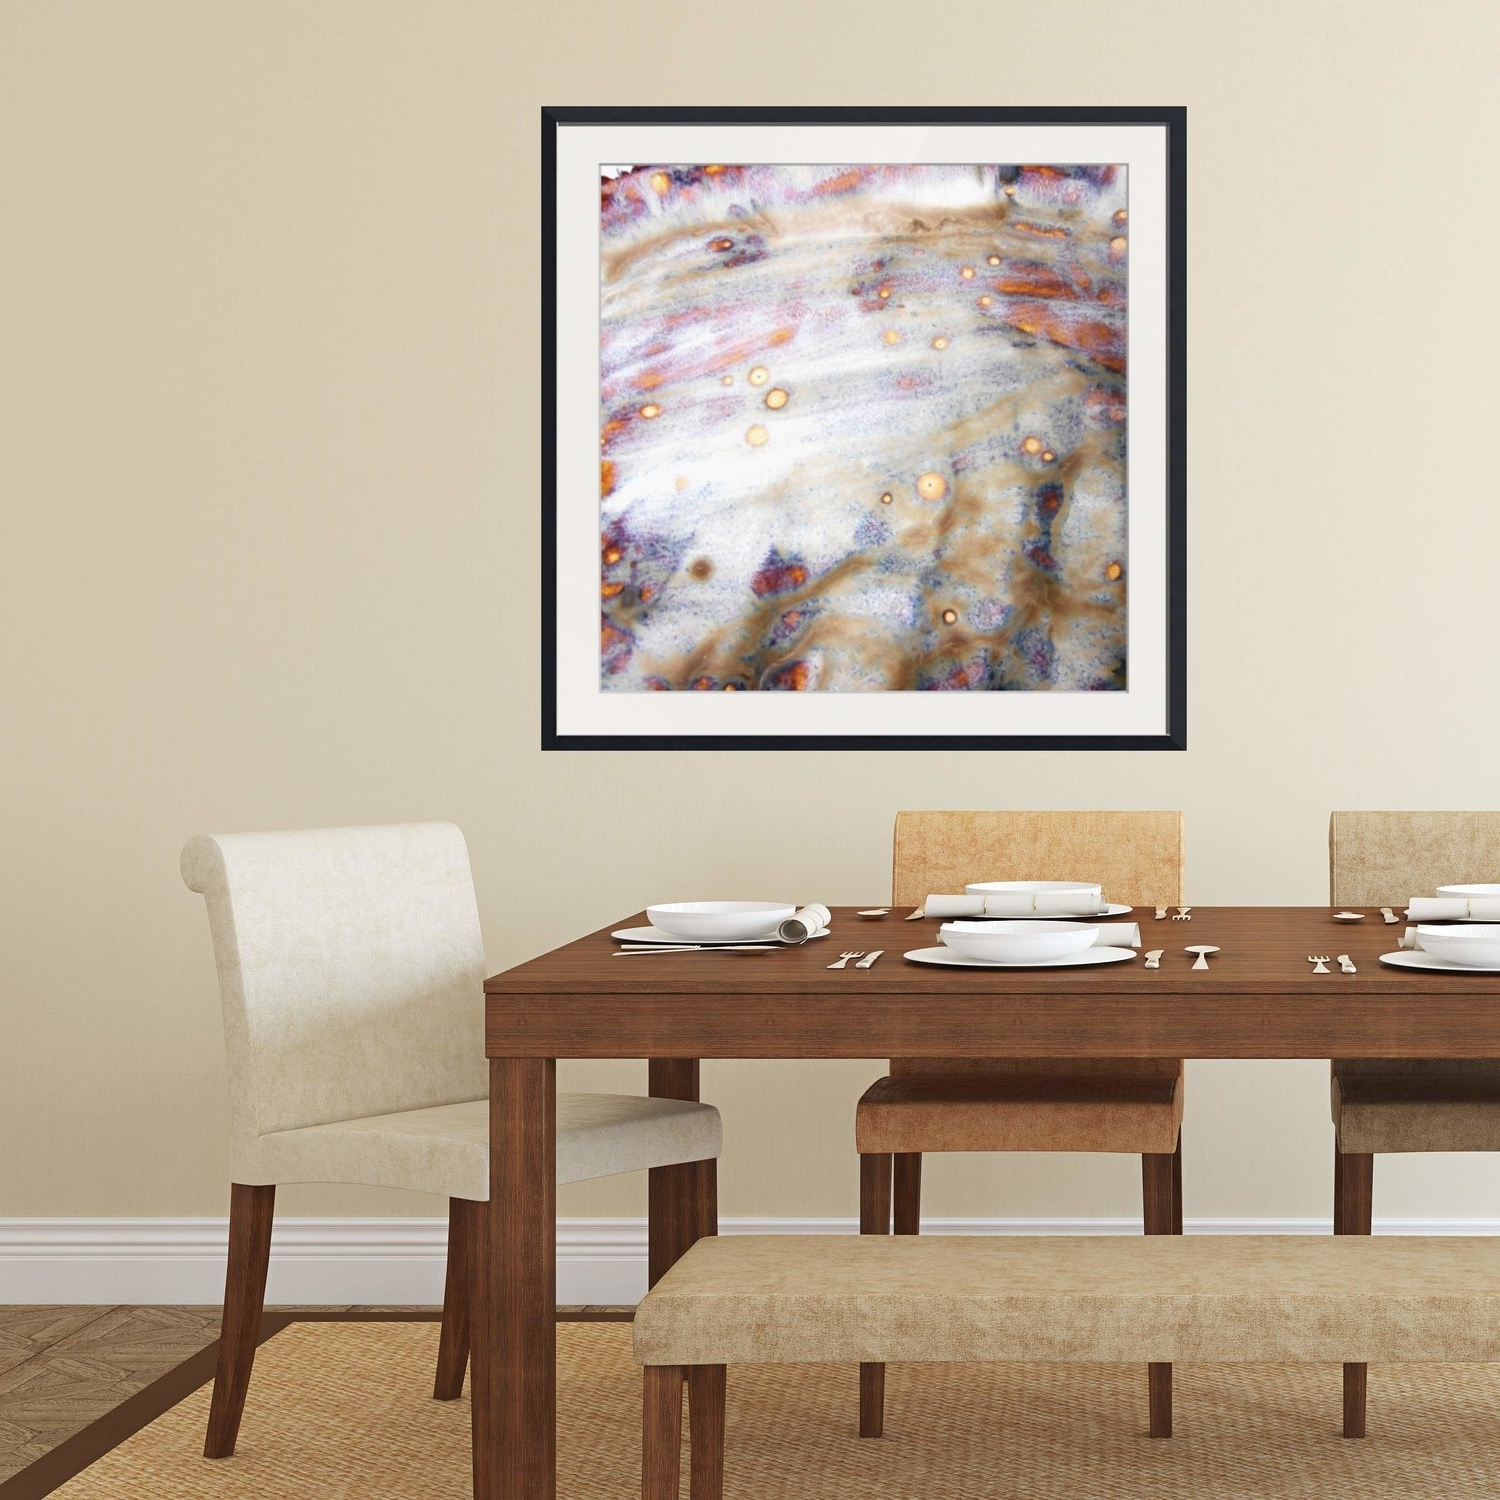 Rustic Modern In Preferred Contemporary Framed Art Prints (View 12 of 15)